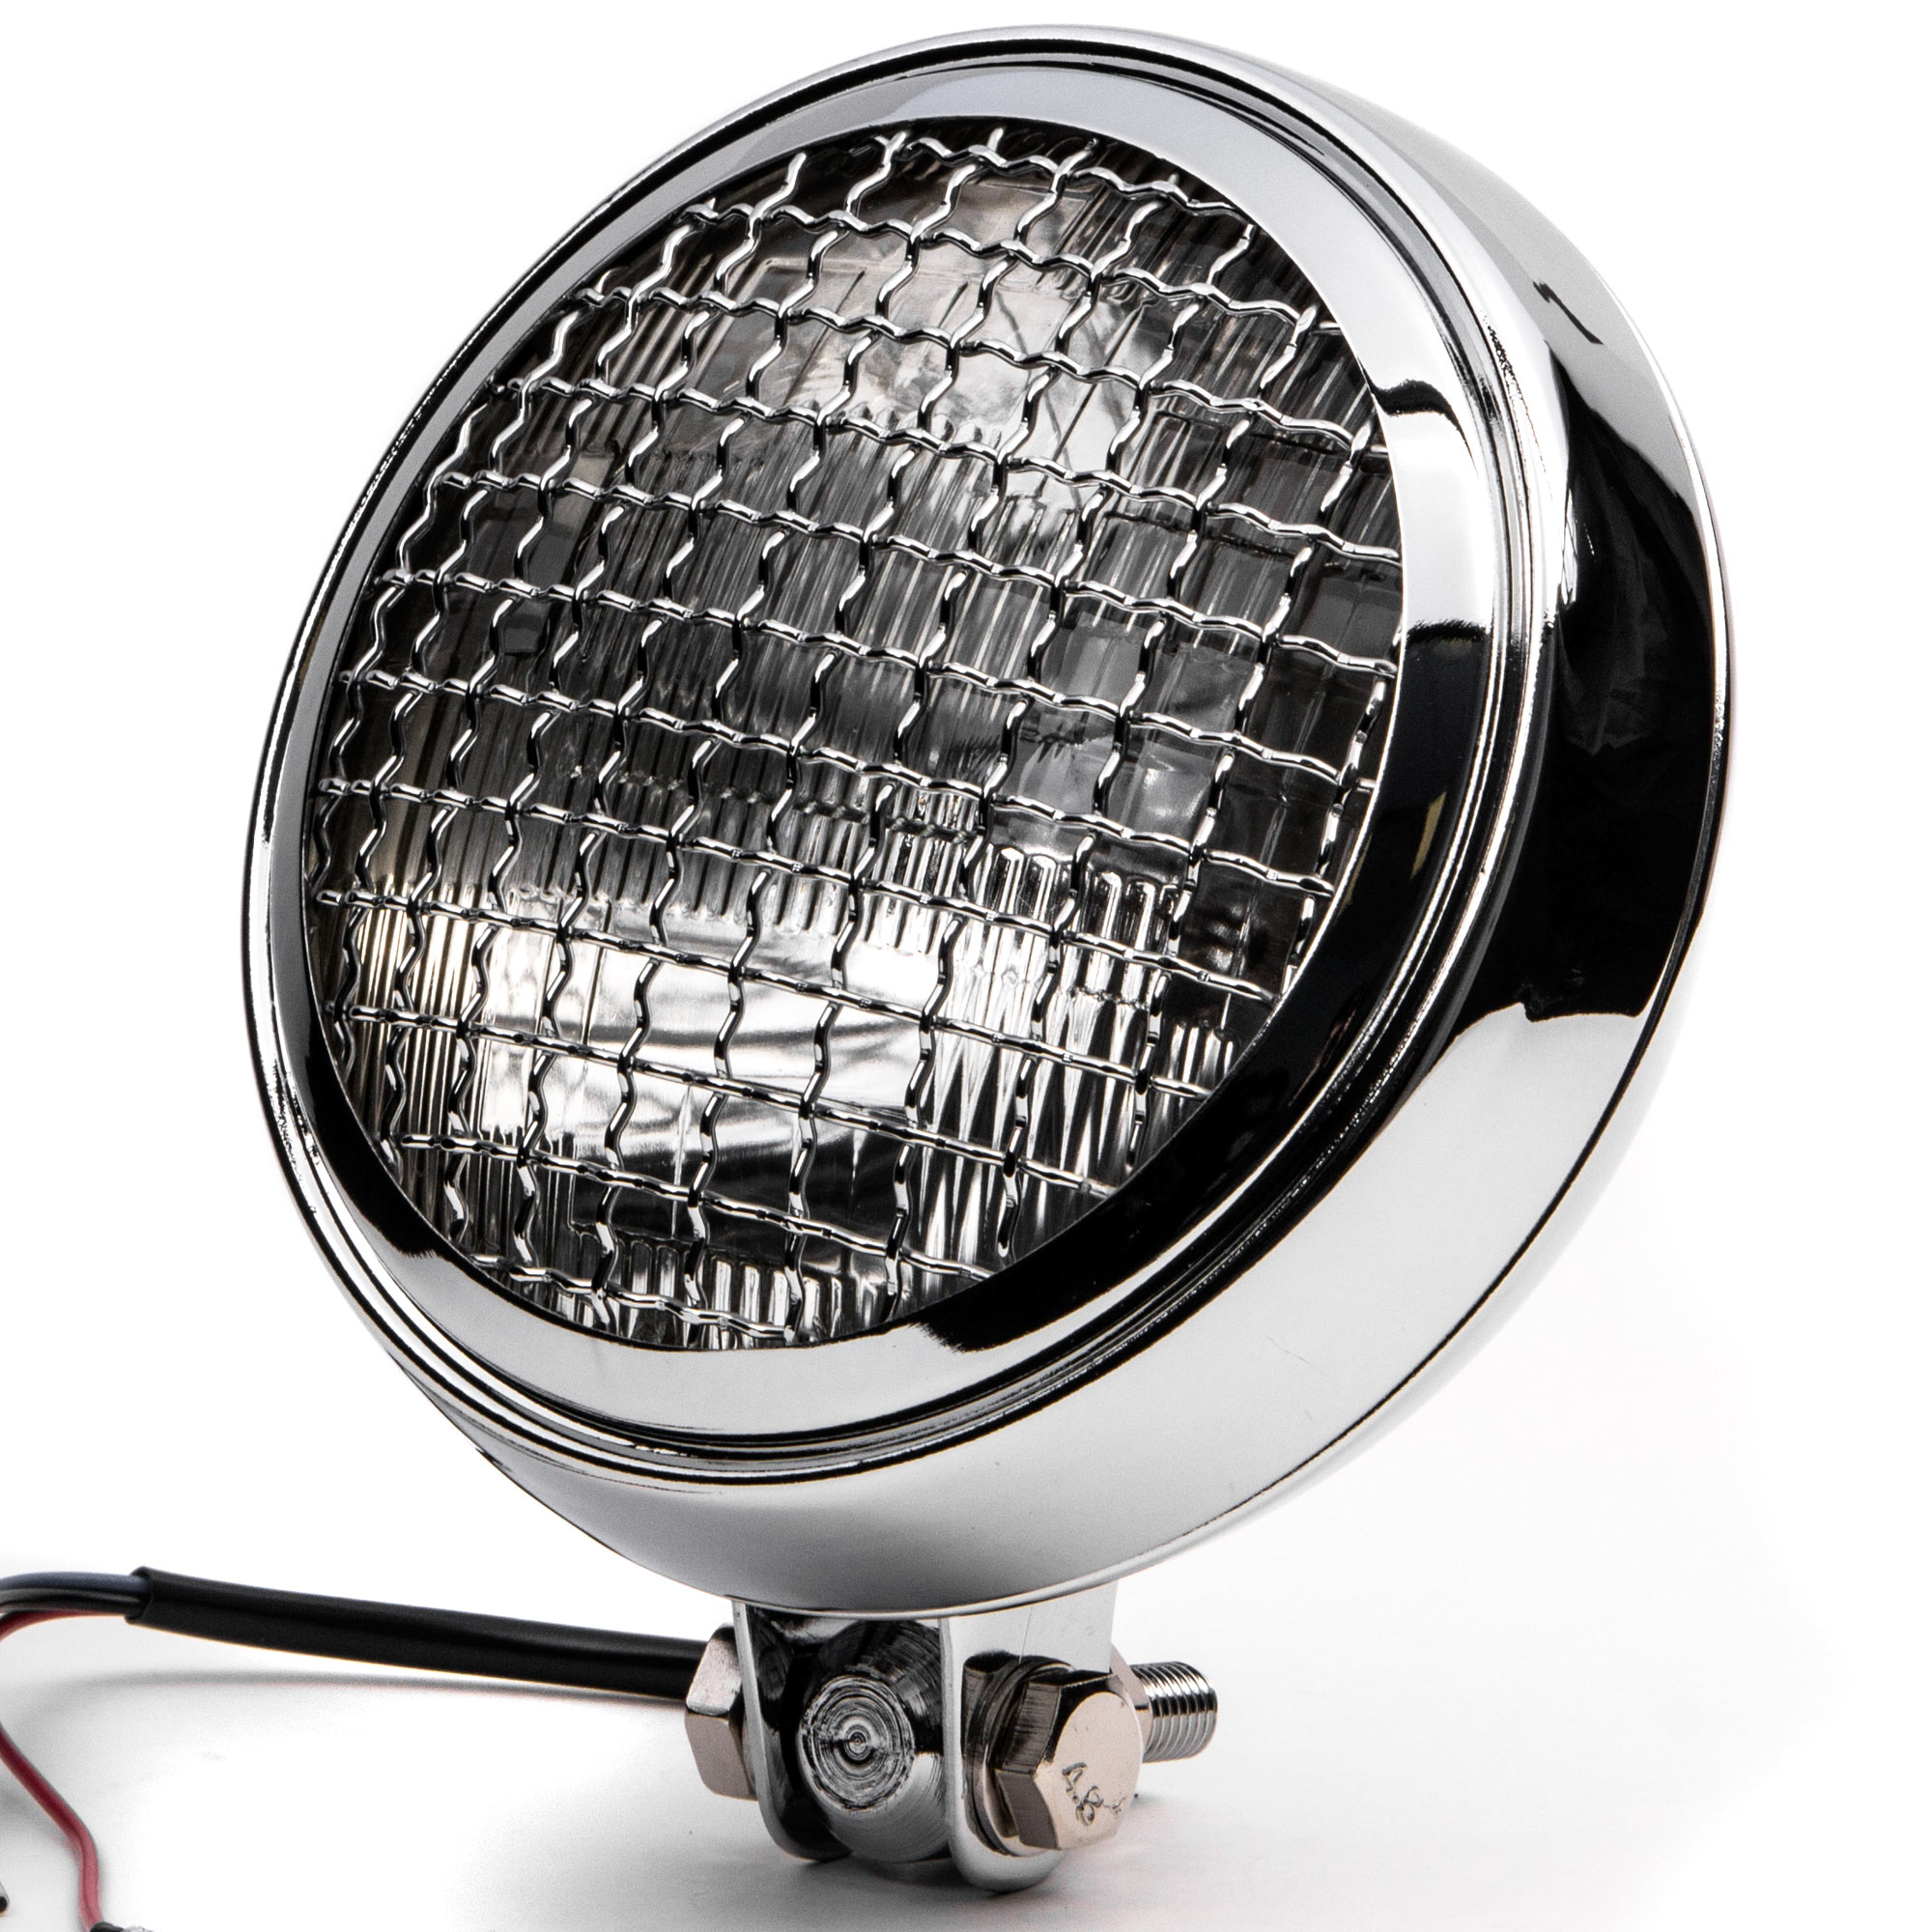 """Krator 6"""" Chrome Motorcycle Headlight w/ Mesh Grill High Low Beam Headlamp Bottom Mount for Victory Hammer 8-Ball - image 8 of 8"""